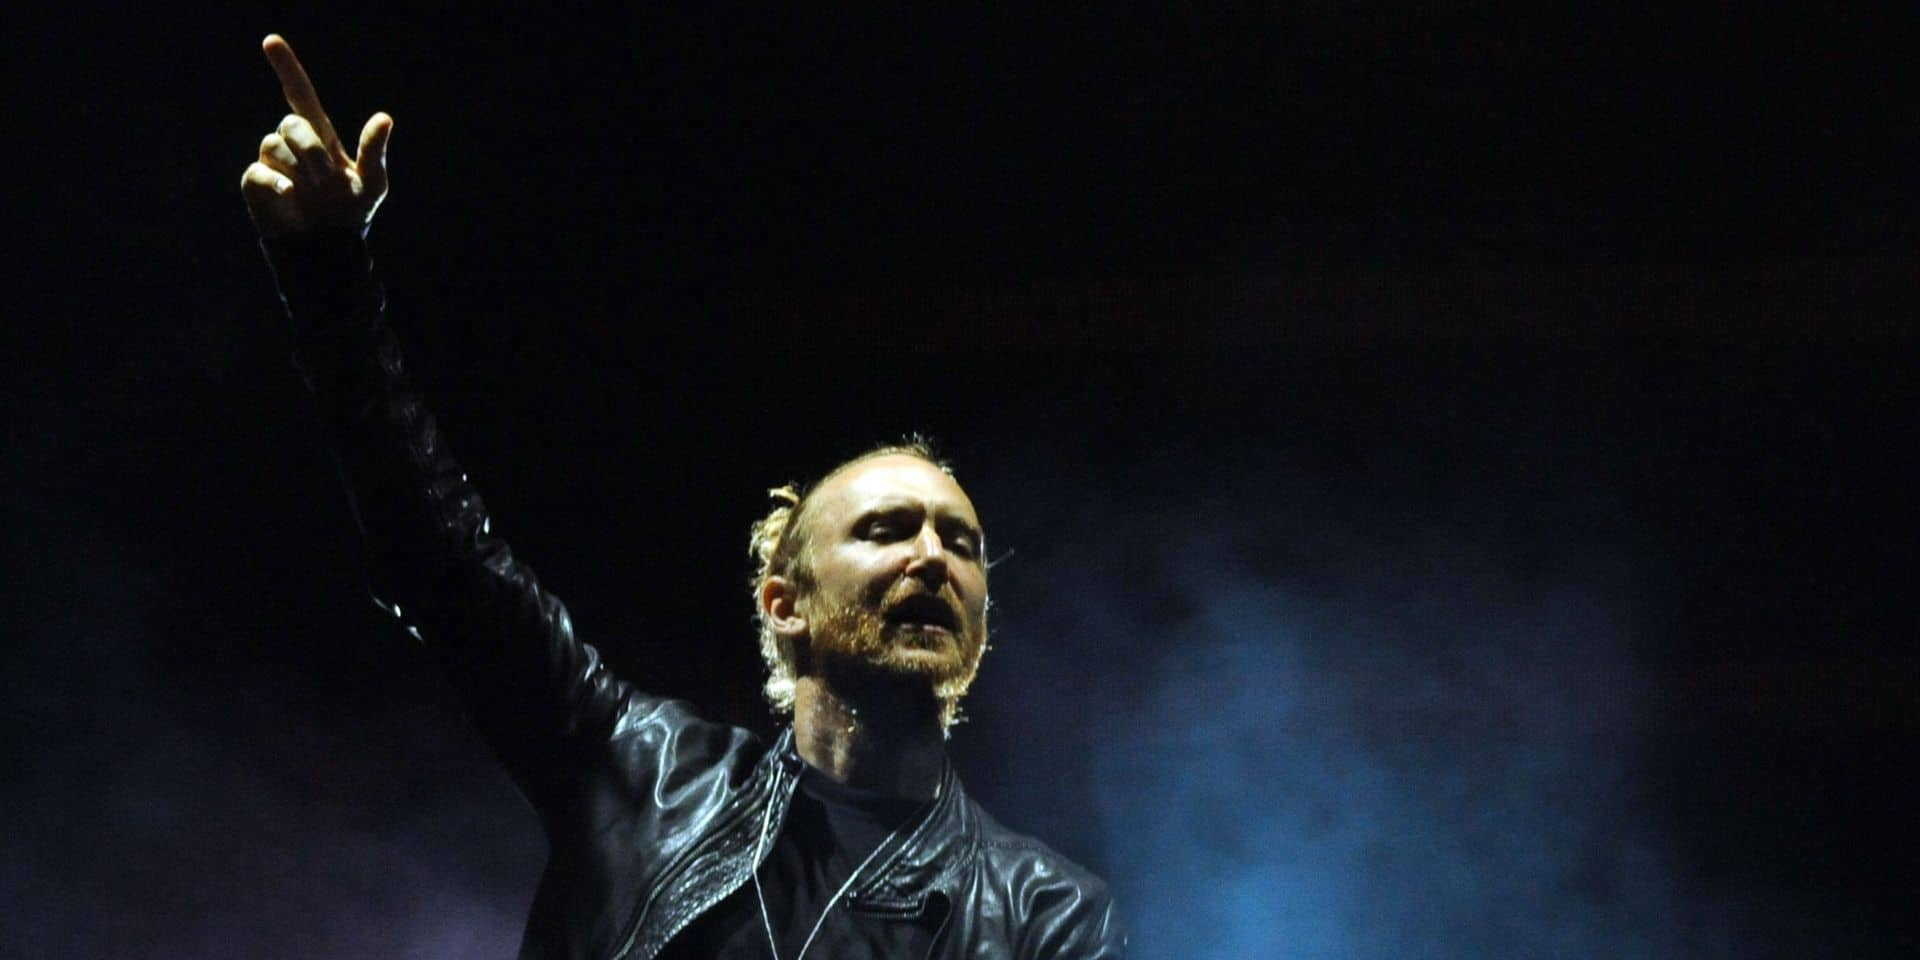 Guetta, Jarre, Patti Smith: réveillon au son du livestream